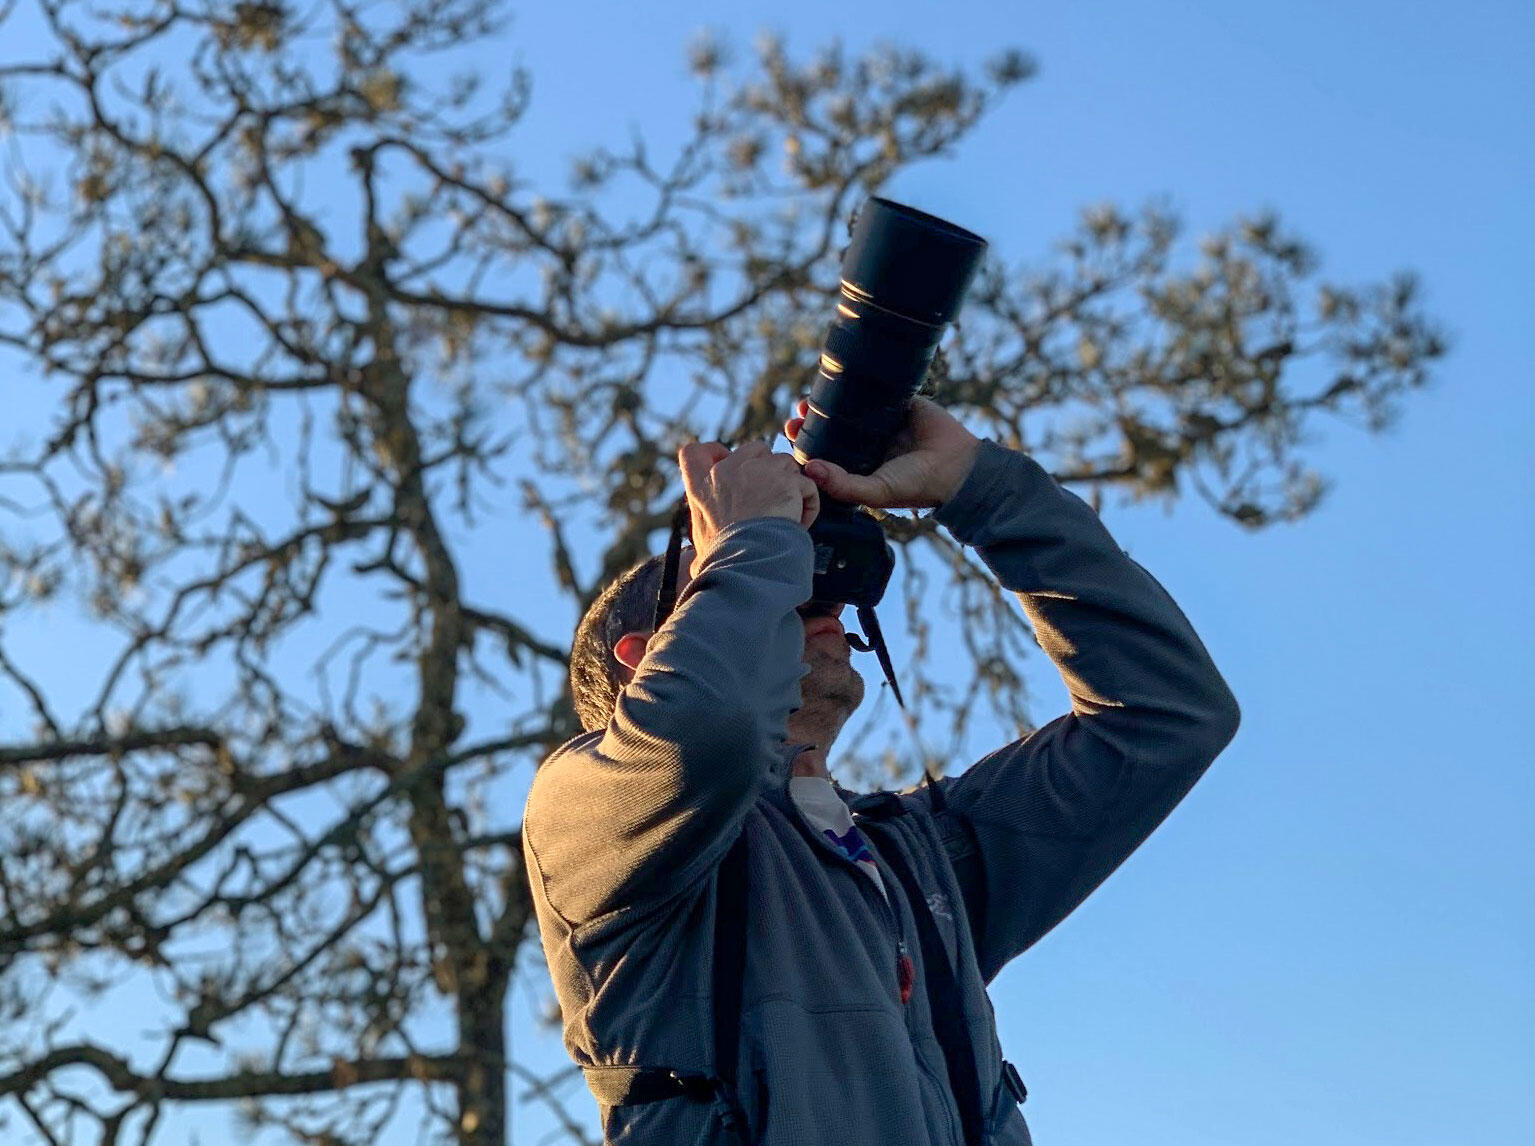 Charlie Bostwick birding in Henry Cowell Redwoods State Park, California this year. Courtesy of Charlie Bostwick